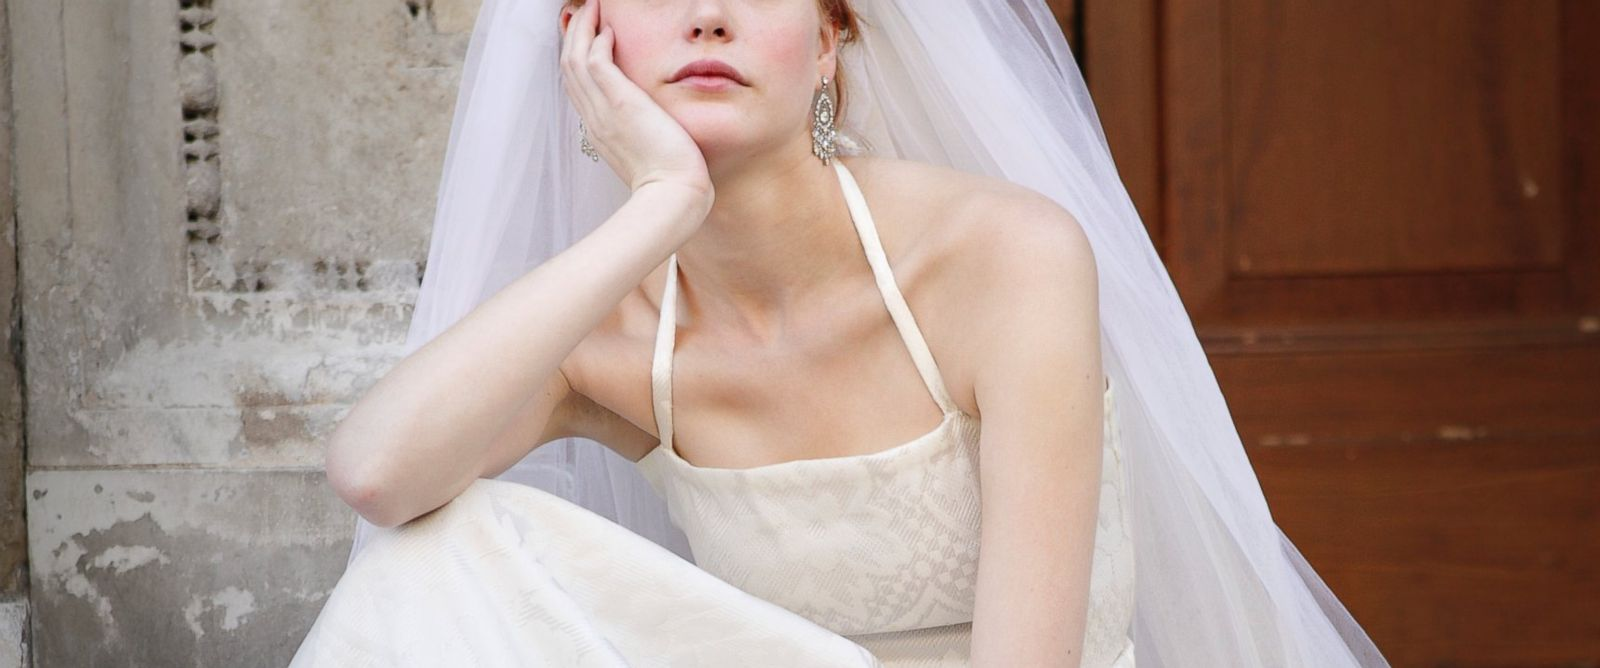 PHOTO: Some brides experience deep bouts of depression after their big day has come and gone.